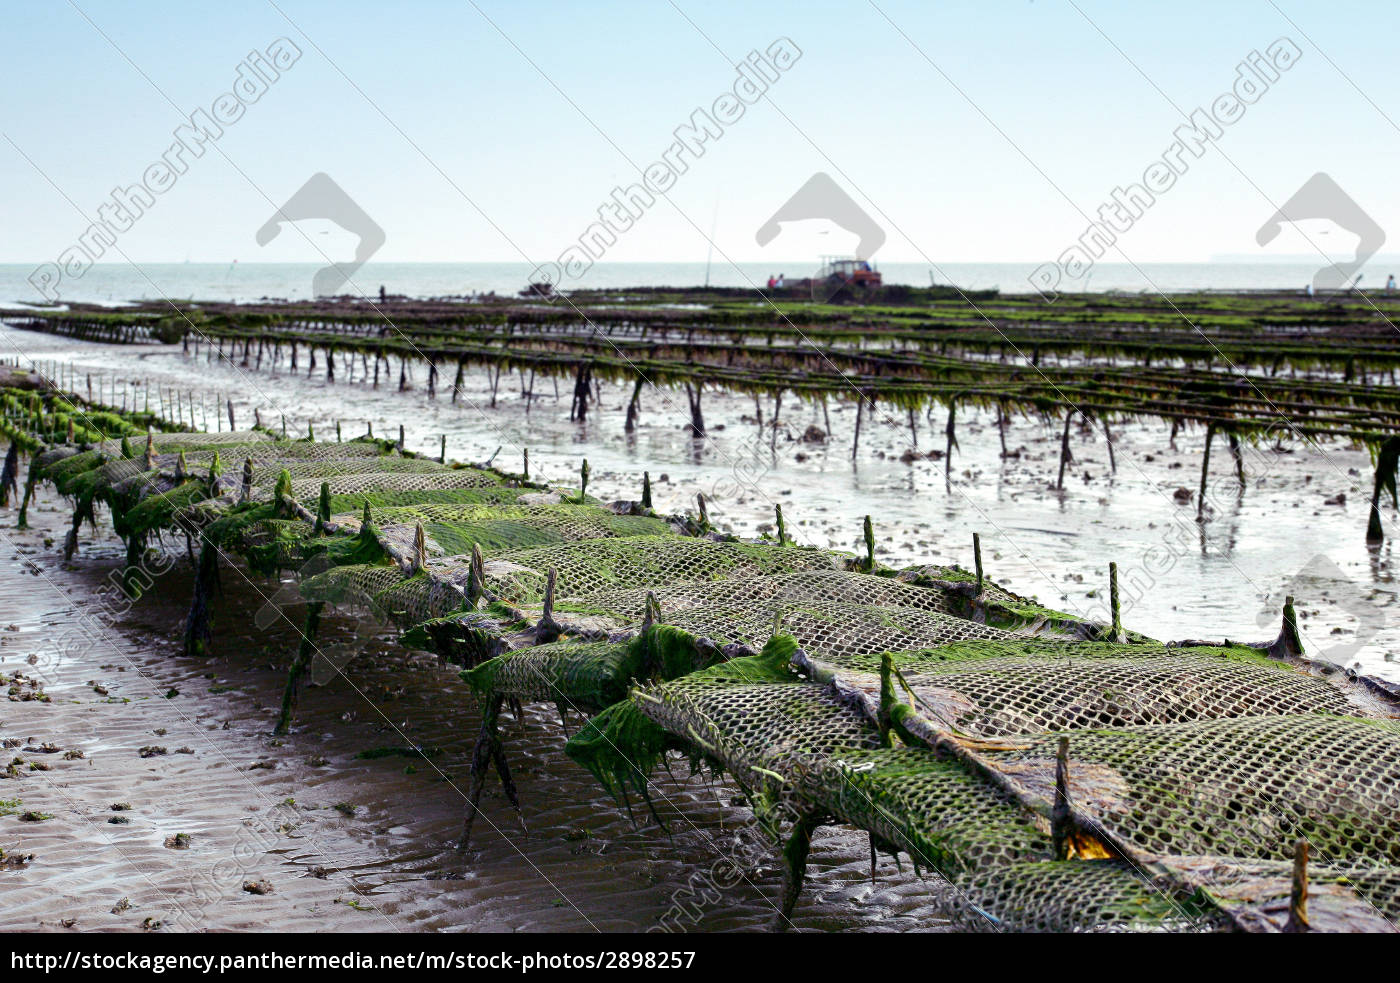 culture, low tide, oyster, pool, oyster pond, oyster farming - 2898257